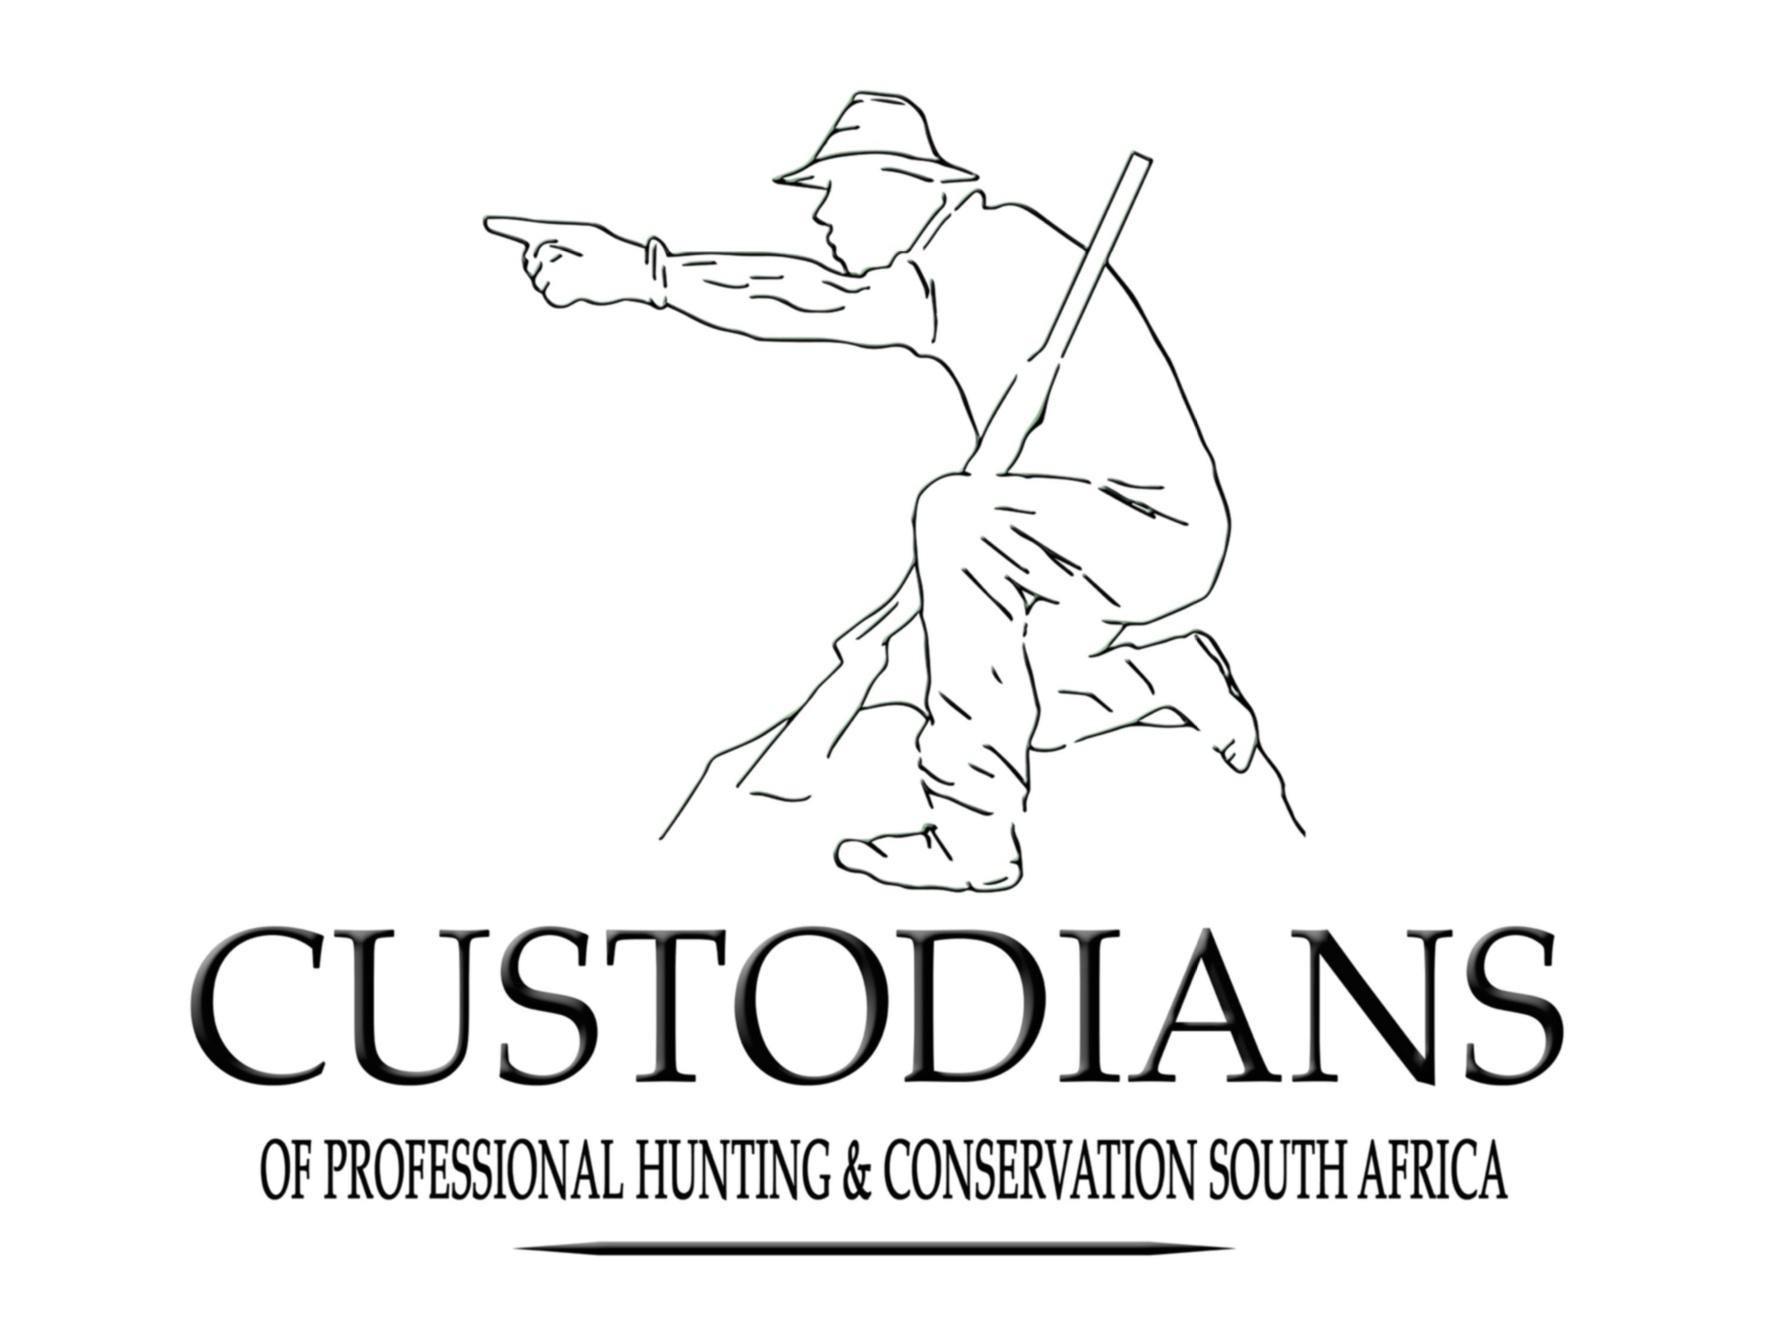 Custodians of Professional Hunting and Conservation - South Africa, CPHC - SA